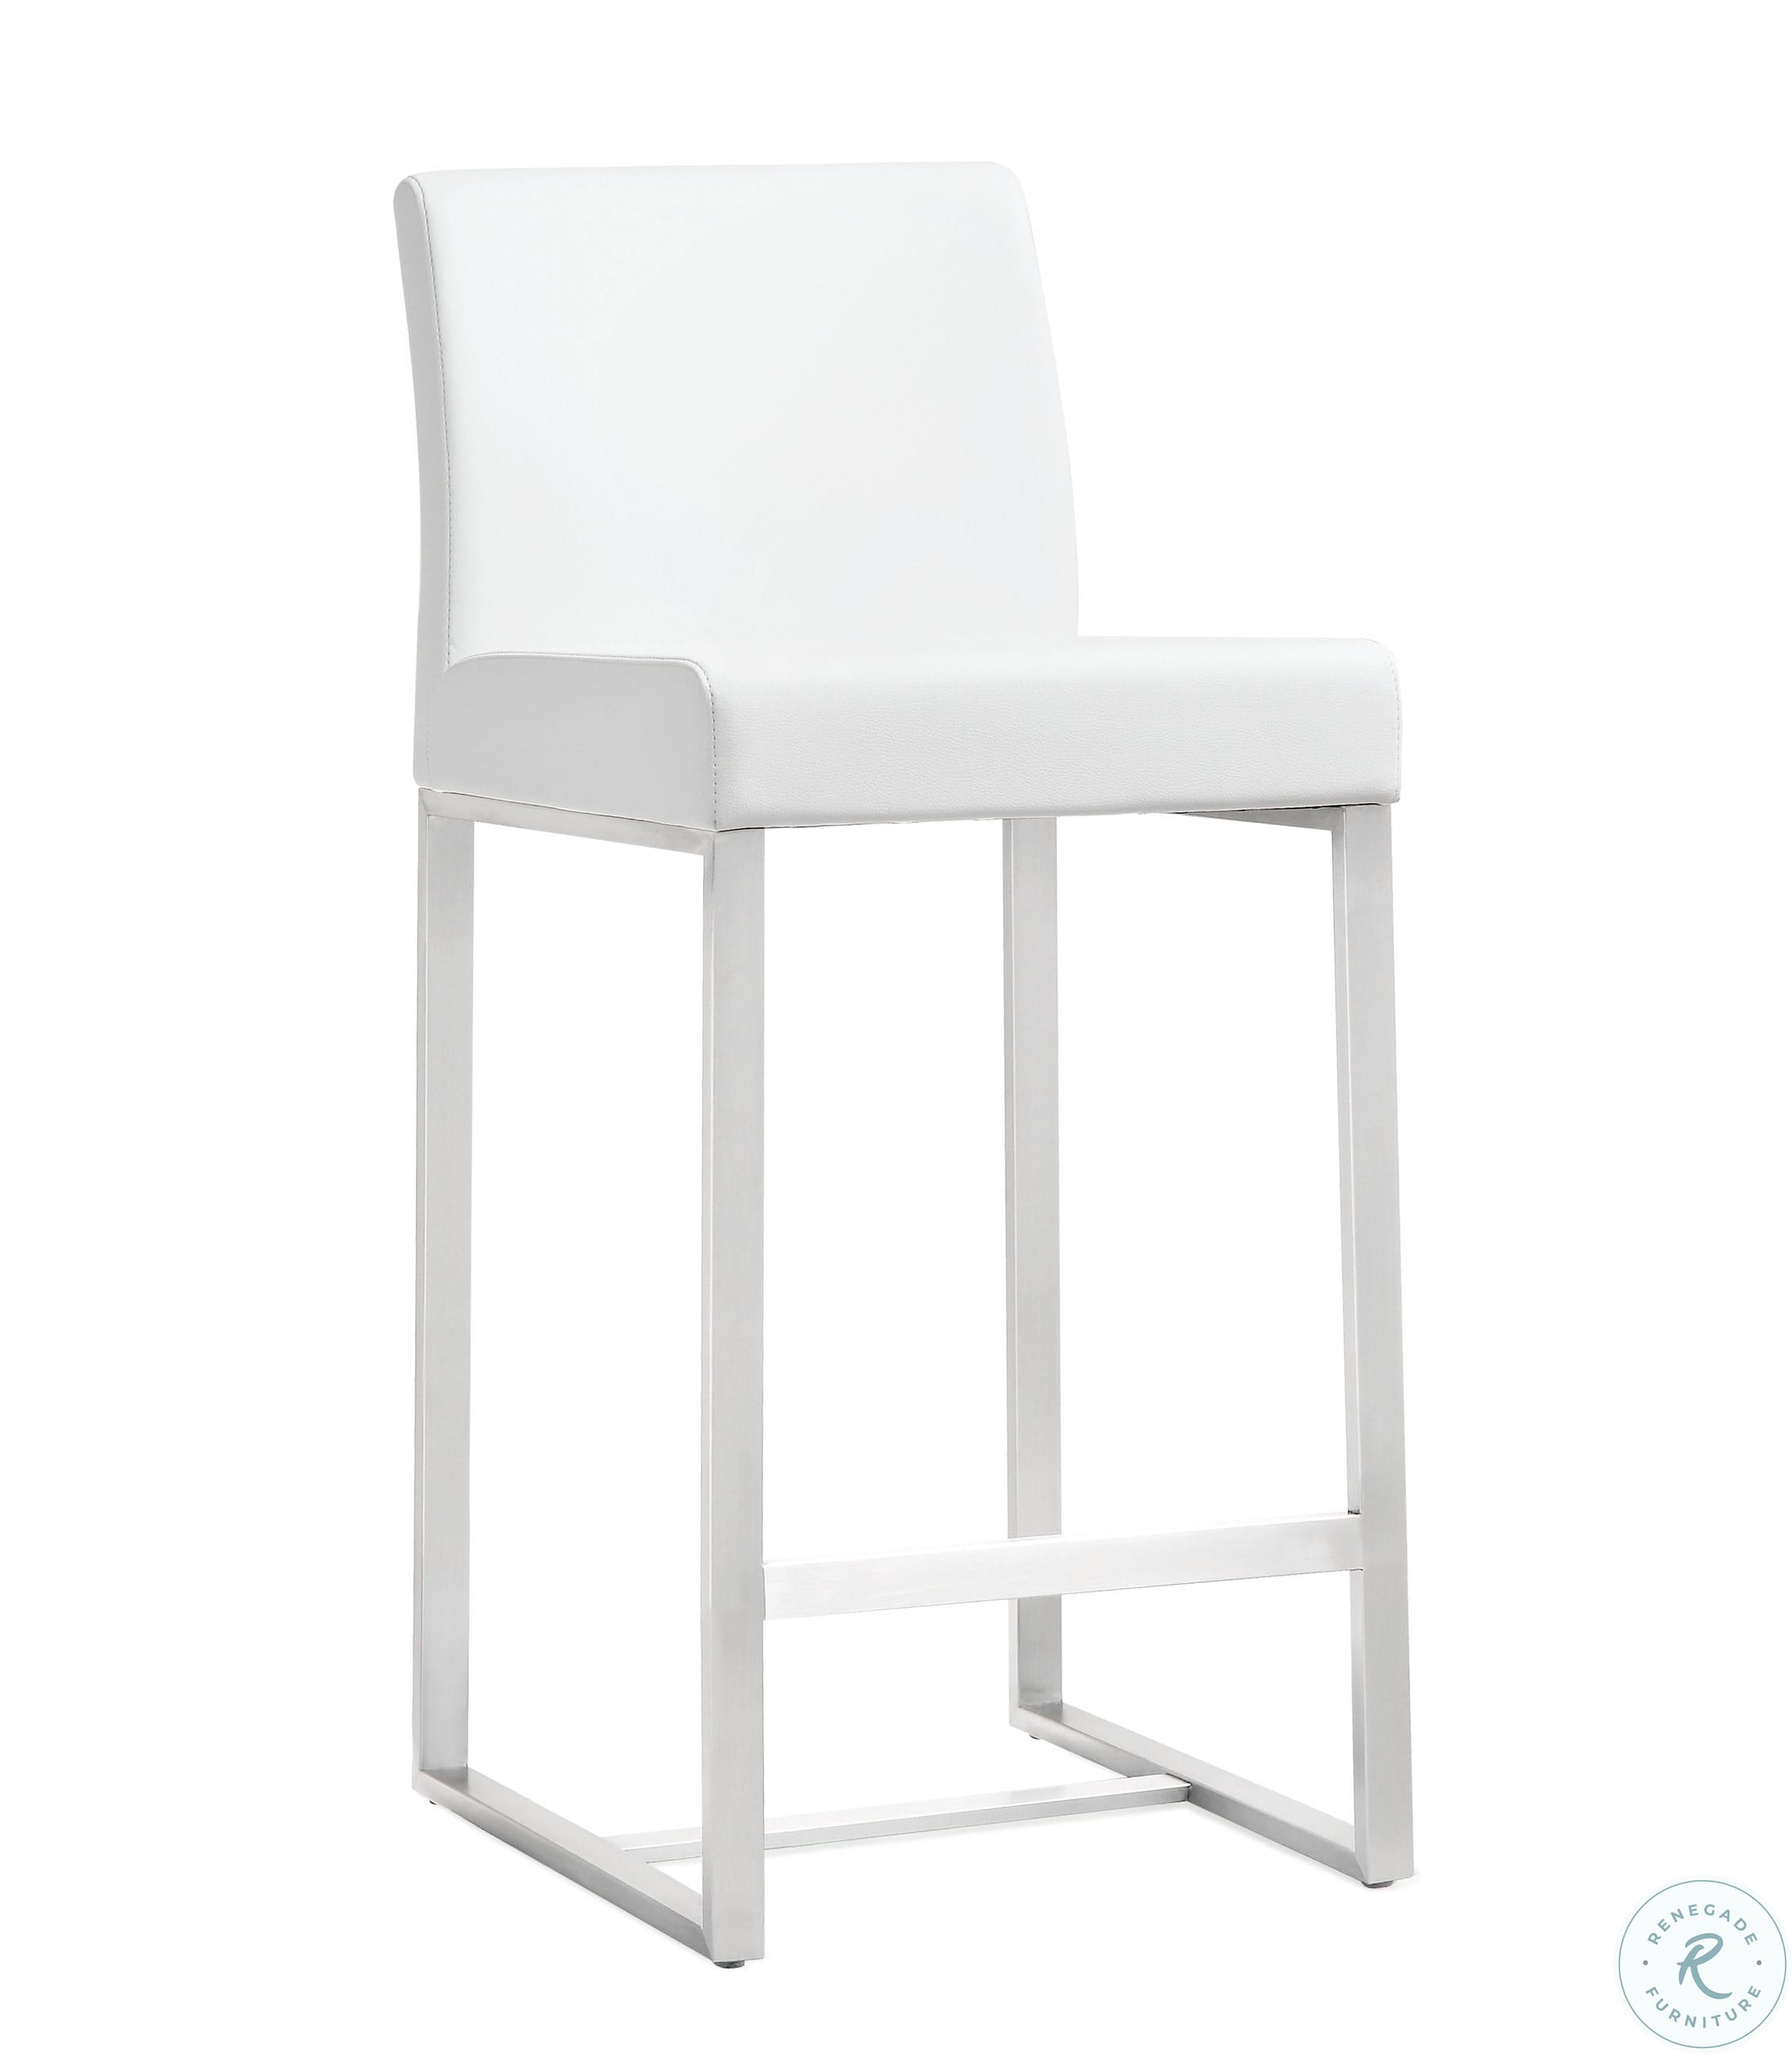 Peachy Denmark White Stainless Steel Counter Stool Set Of 2 Caraccident5 Cool Chair Designs And Ideas Caraccident5Info